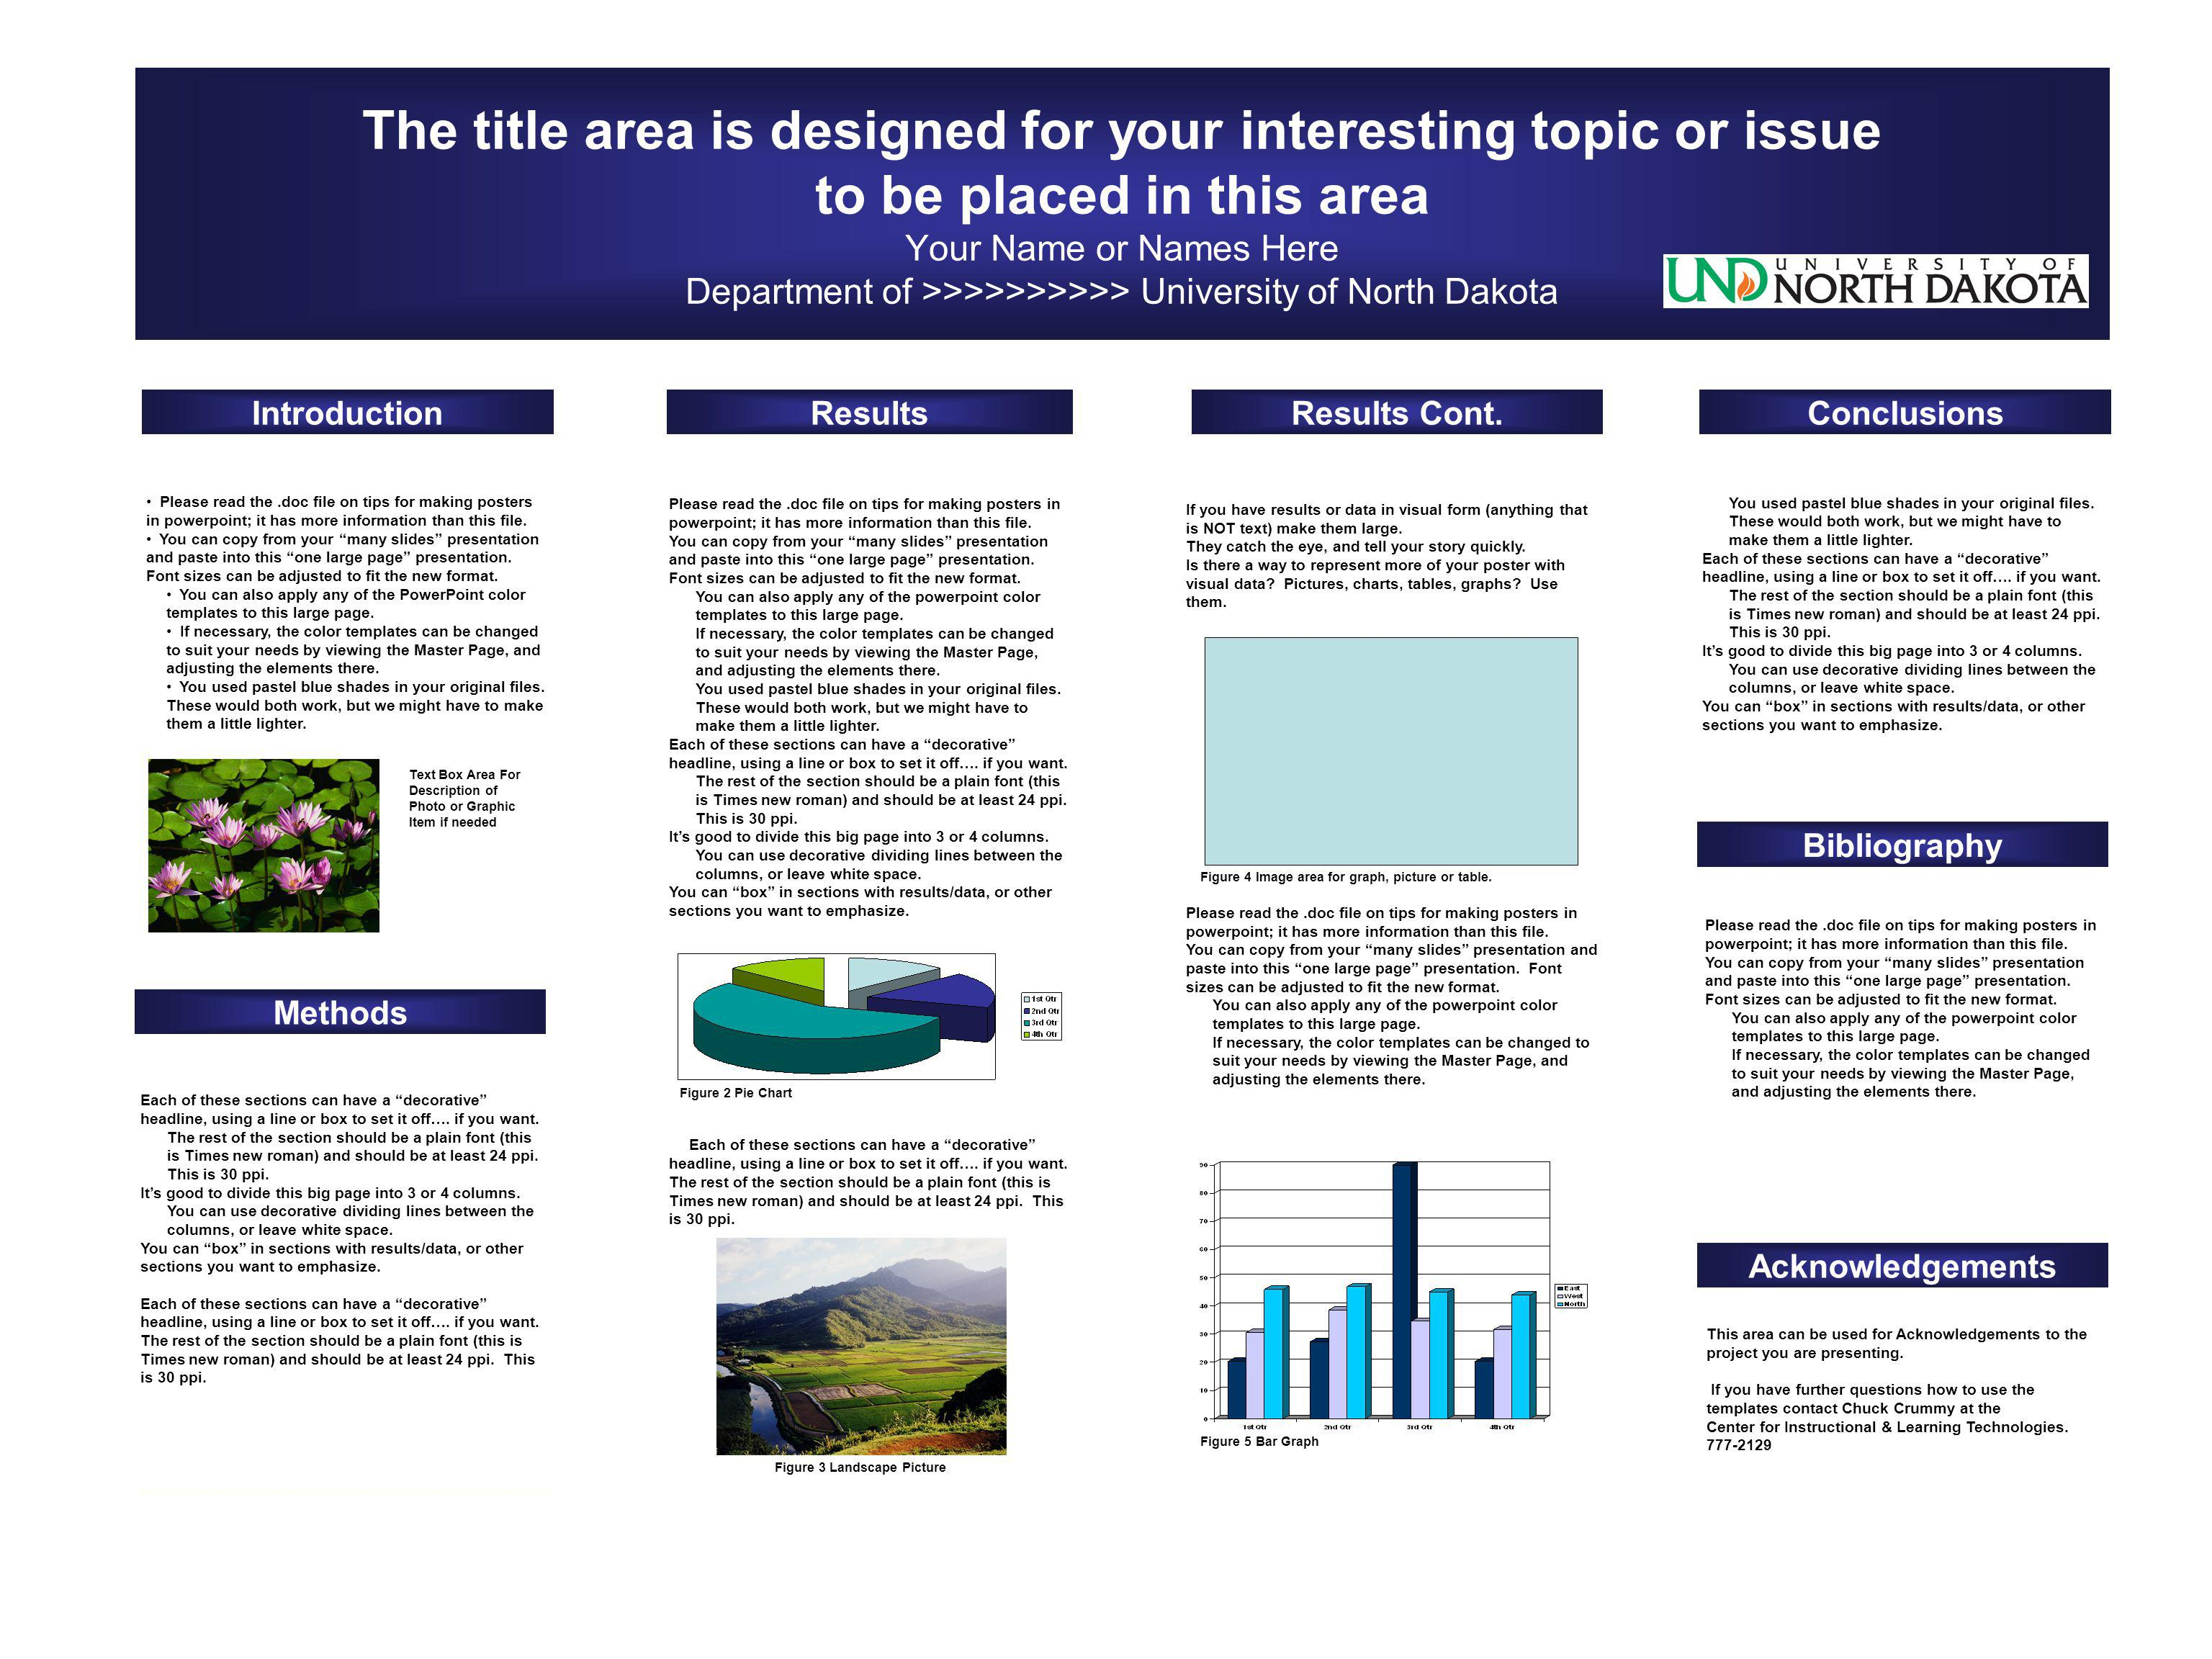 The title area is designed for your interesting topic or issue to be placed in this area Your Name or Names Here Department of >>>>>>>>>> University of North Dakota IntroductionResultsResults Cont.Conclusions Bibliography Acknowledgements Methods Please read the.doc file on tips for making posters in powerpoint; it has more information than this file.